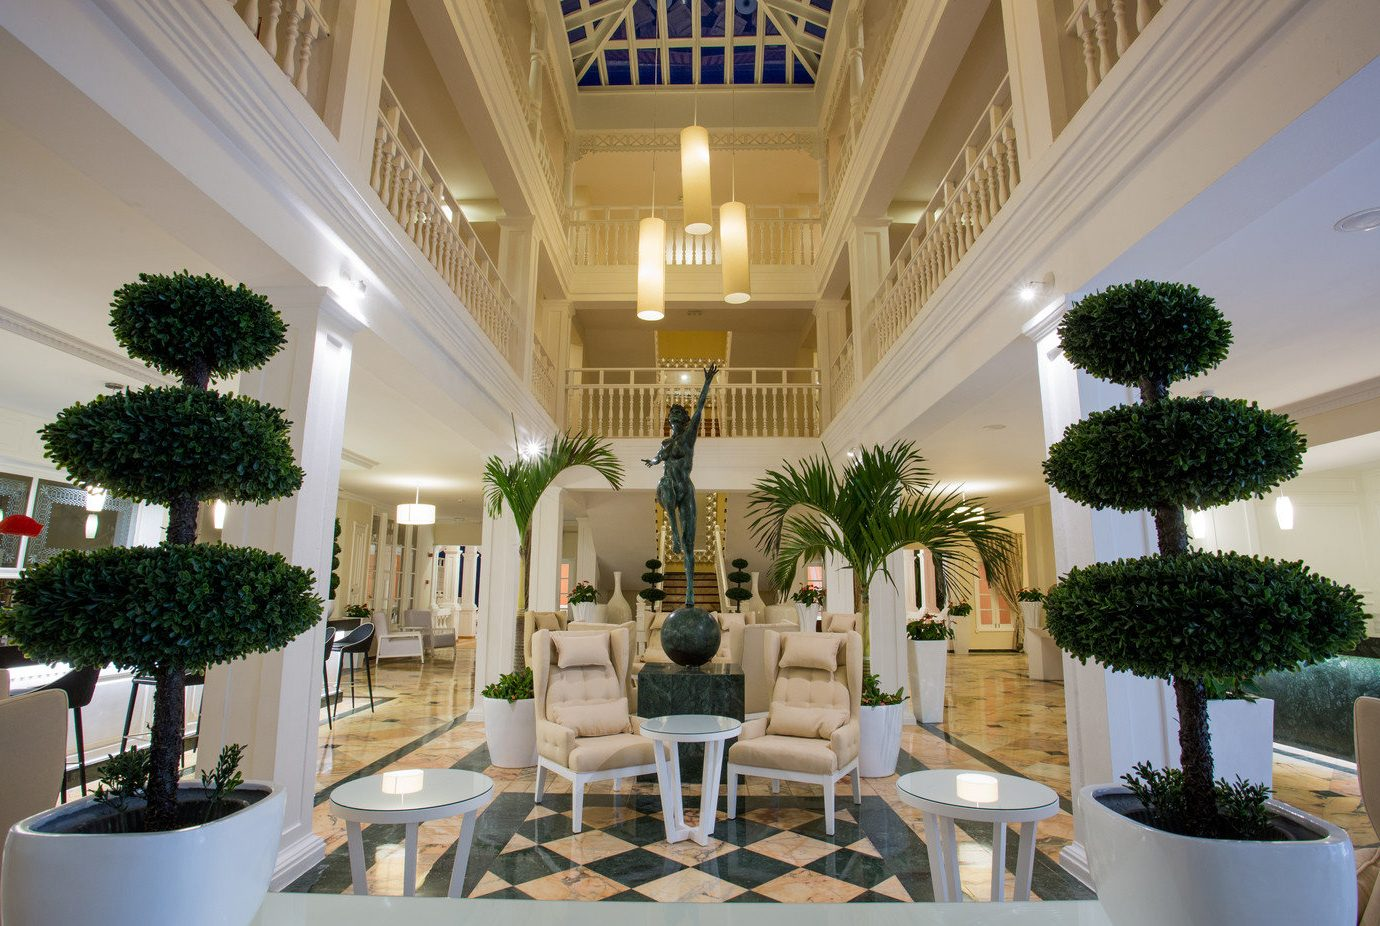 All-Inclusive Resorts Budget caribbean Hotels Lobby interior design function hall decorated ceiling plant floristry estate flower furniture several